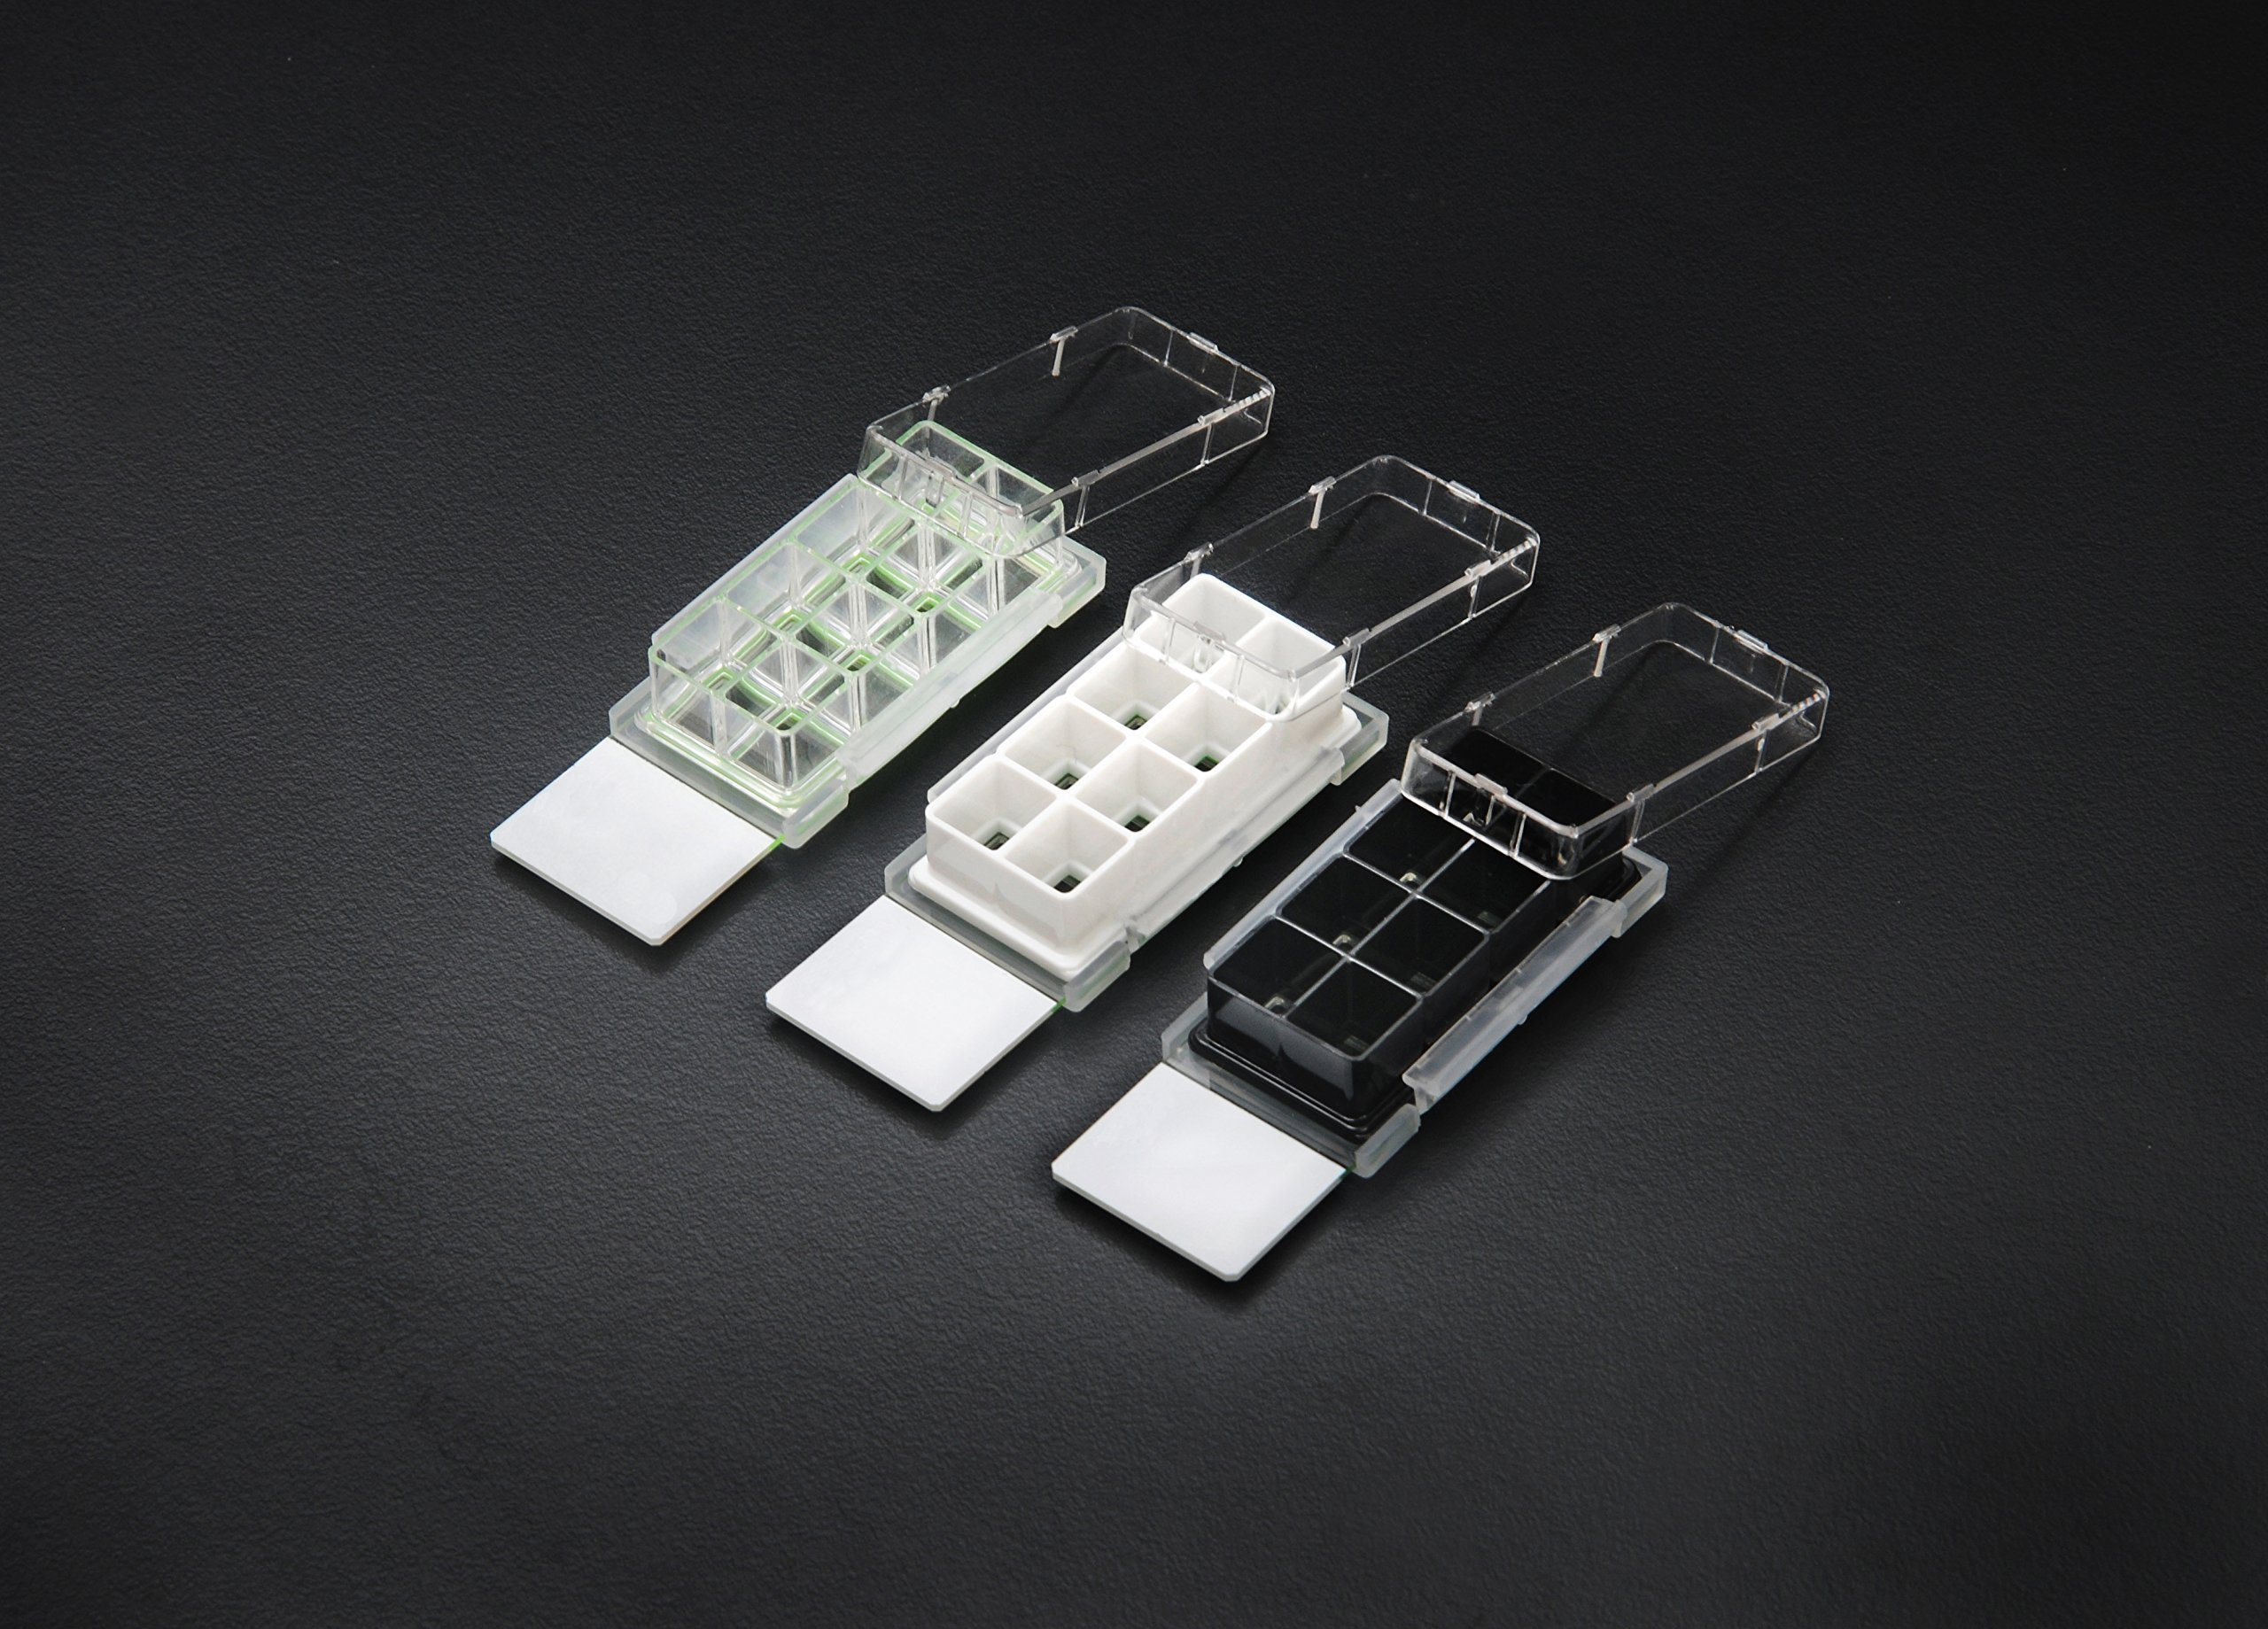 Nest Scientific 230112 Cell Culture Chamber Slides, 2 well with glass slide, 4.55 cm2, 1.2-2.5 mL, 2.952'' Length, 0.59'' Height, 0.984'' Width, Glass, 0.18 fl. oz., Black (Pack of 12)